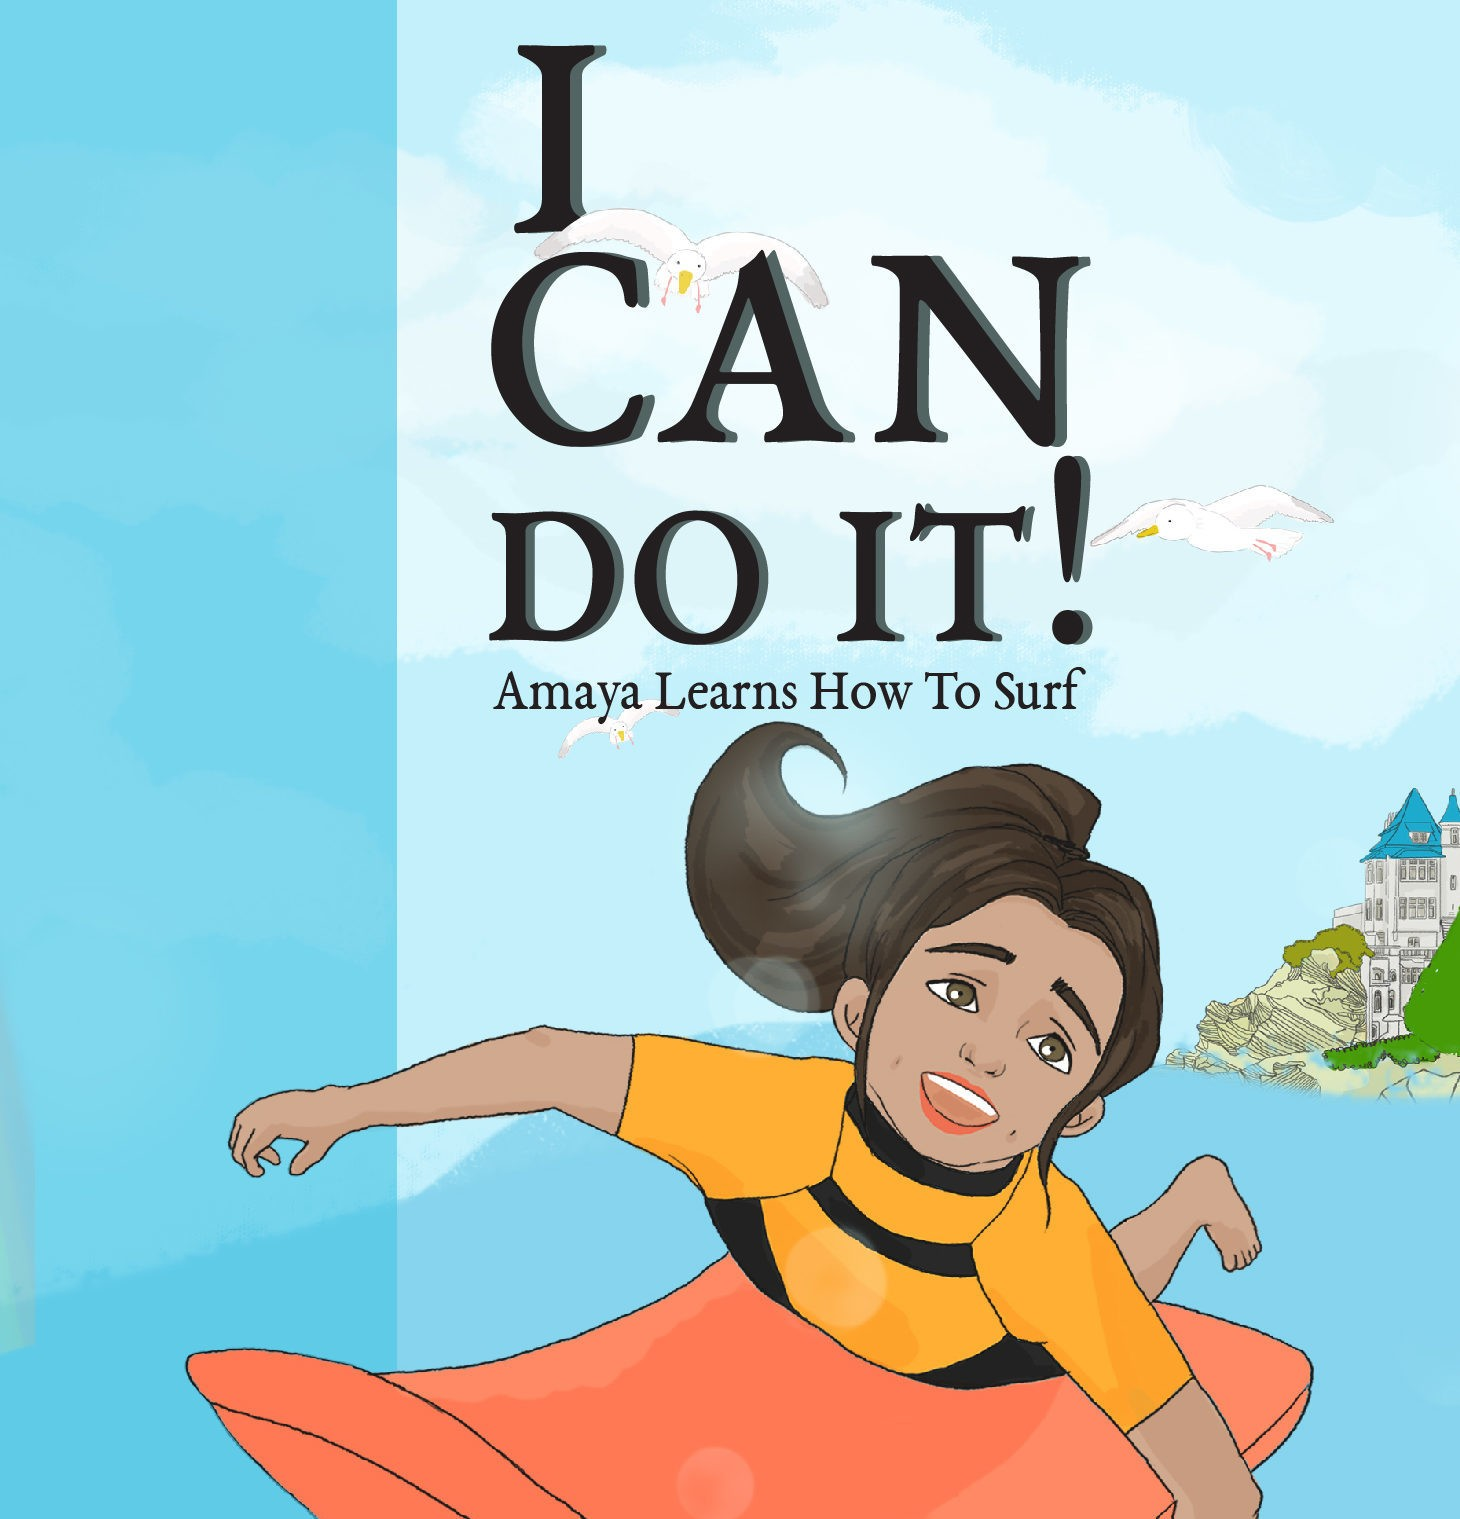 I CAN DO IT! – Amaya learns how to surf